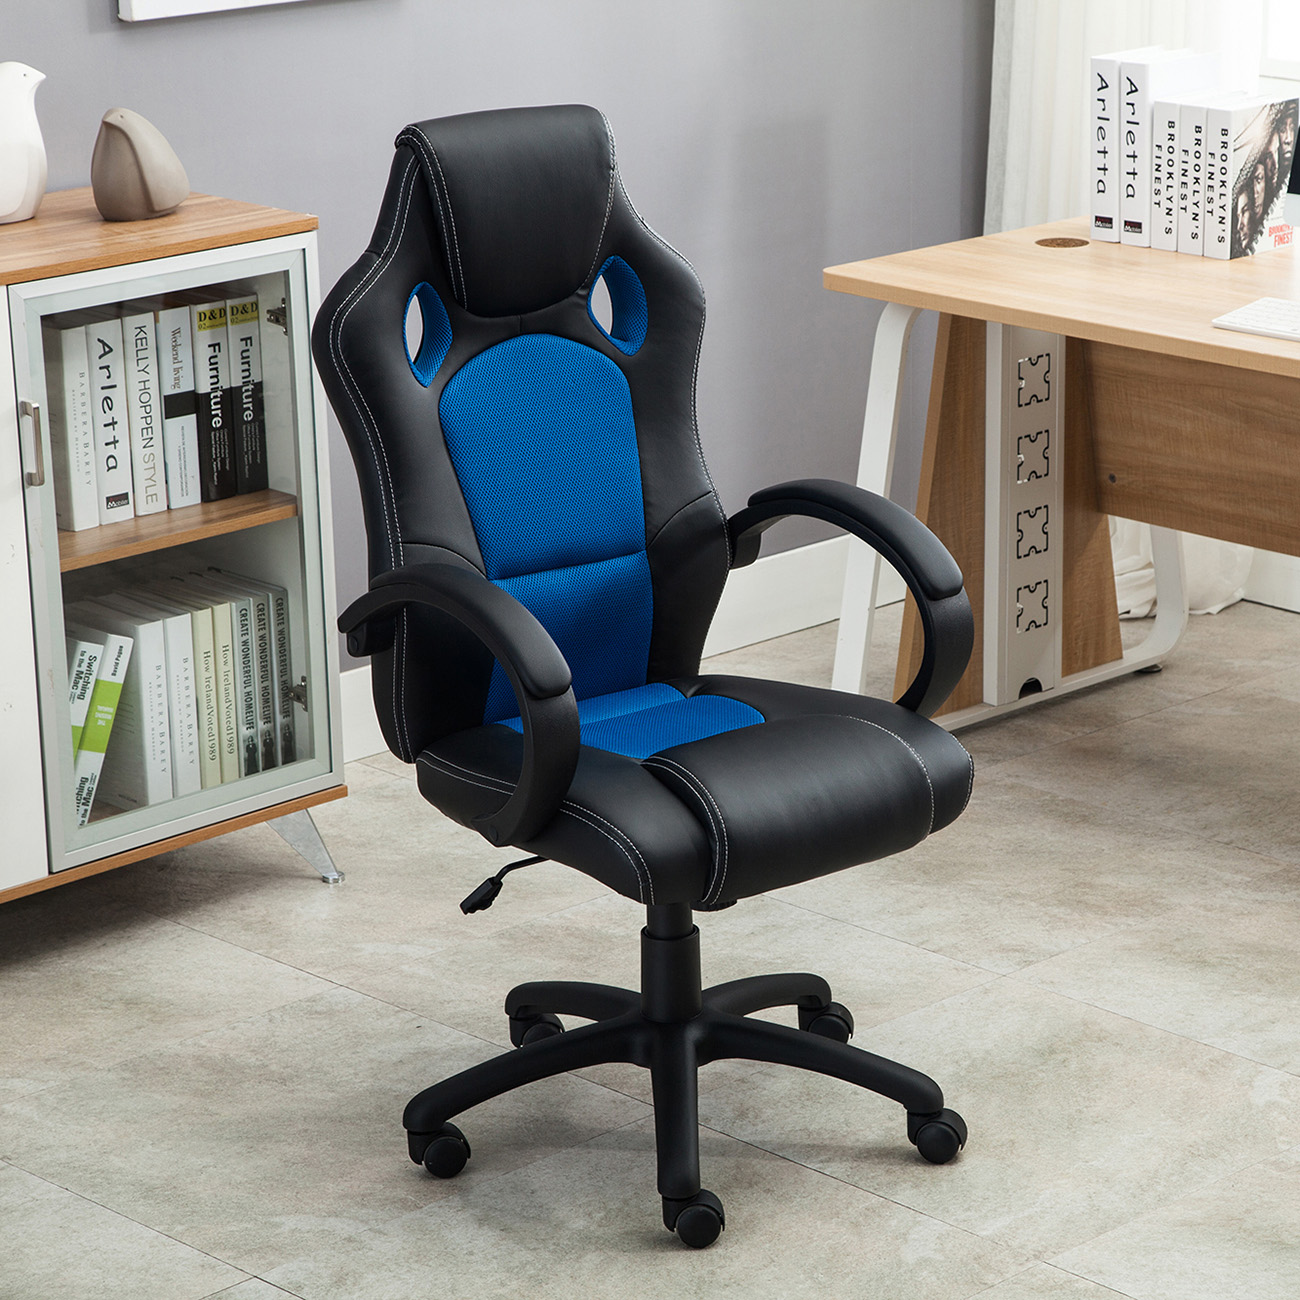 Racing Seat Office Chair High Back Race Car Style Bucket Seat Office Desk Chair